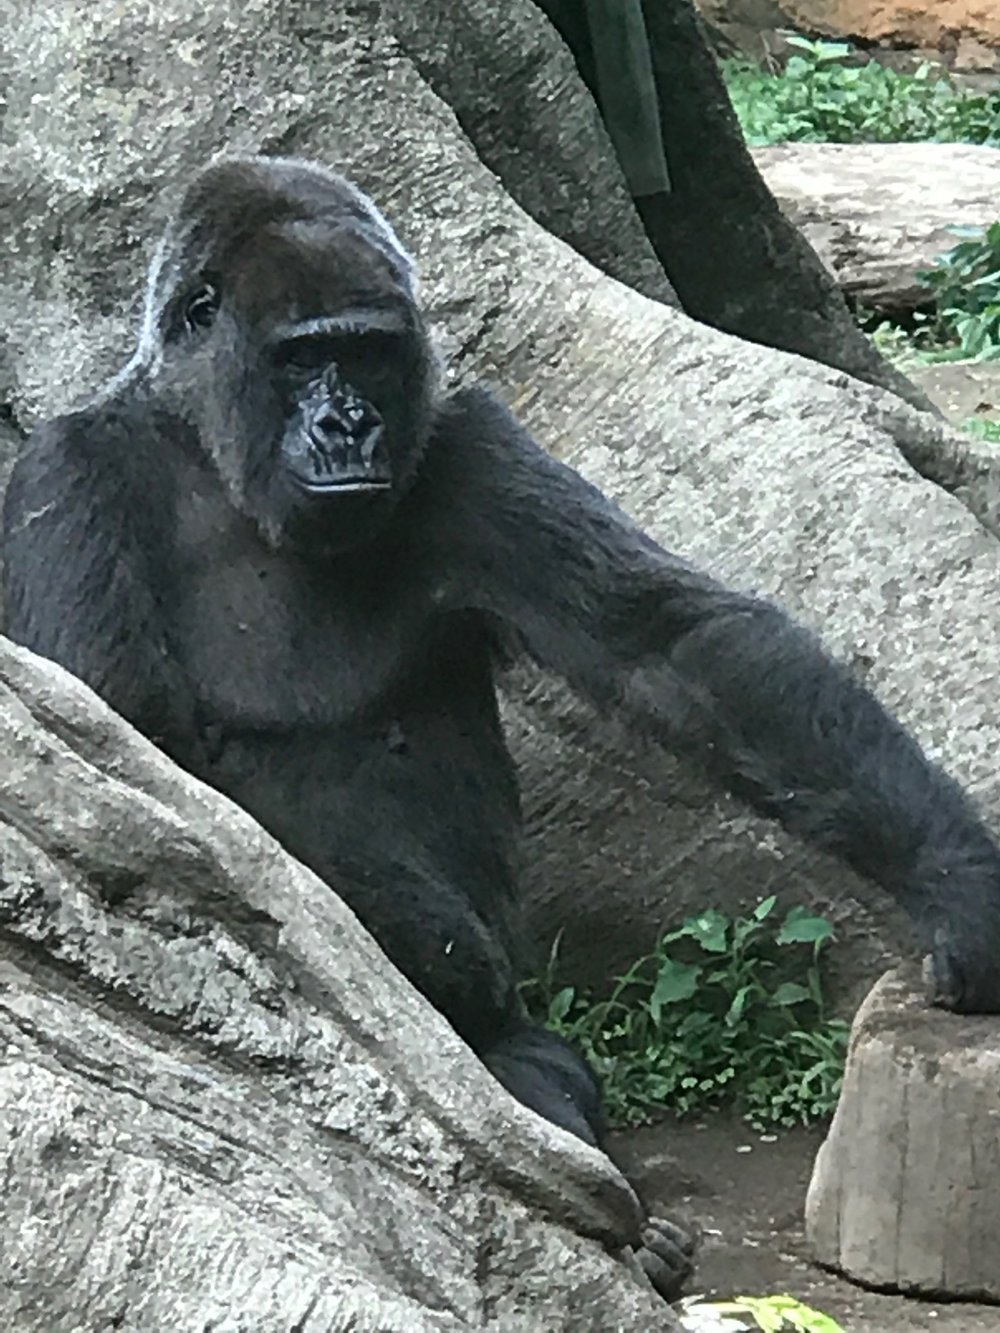 Gorilla at the Ueno Zoo